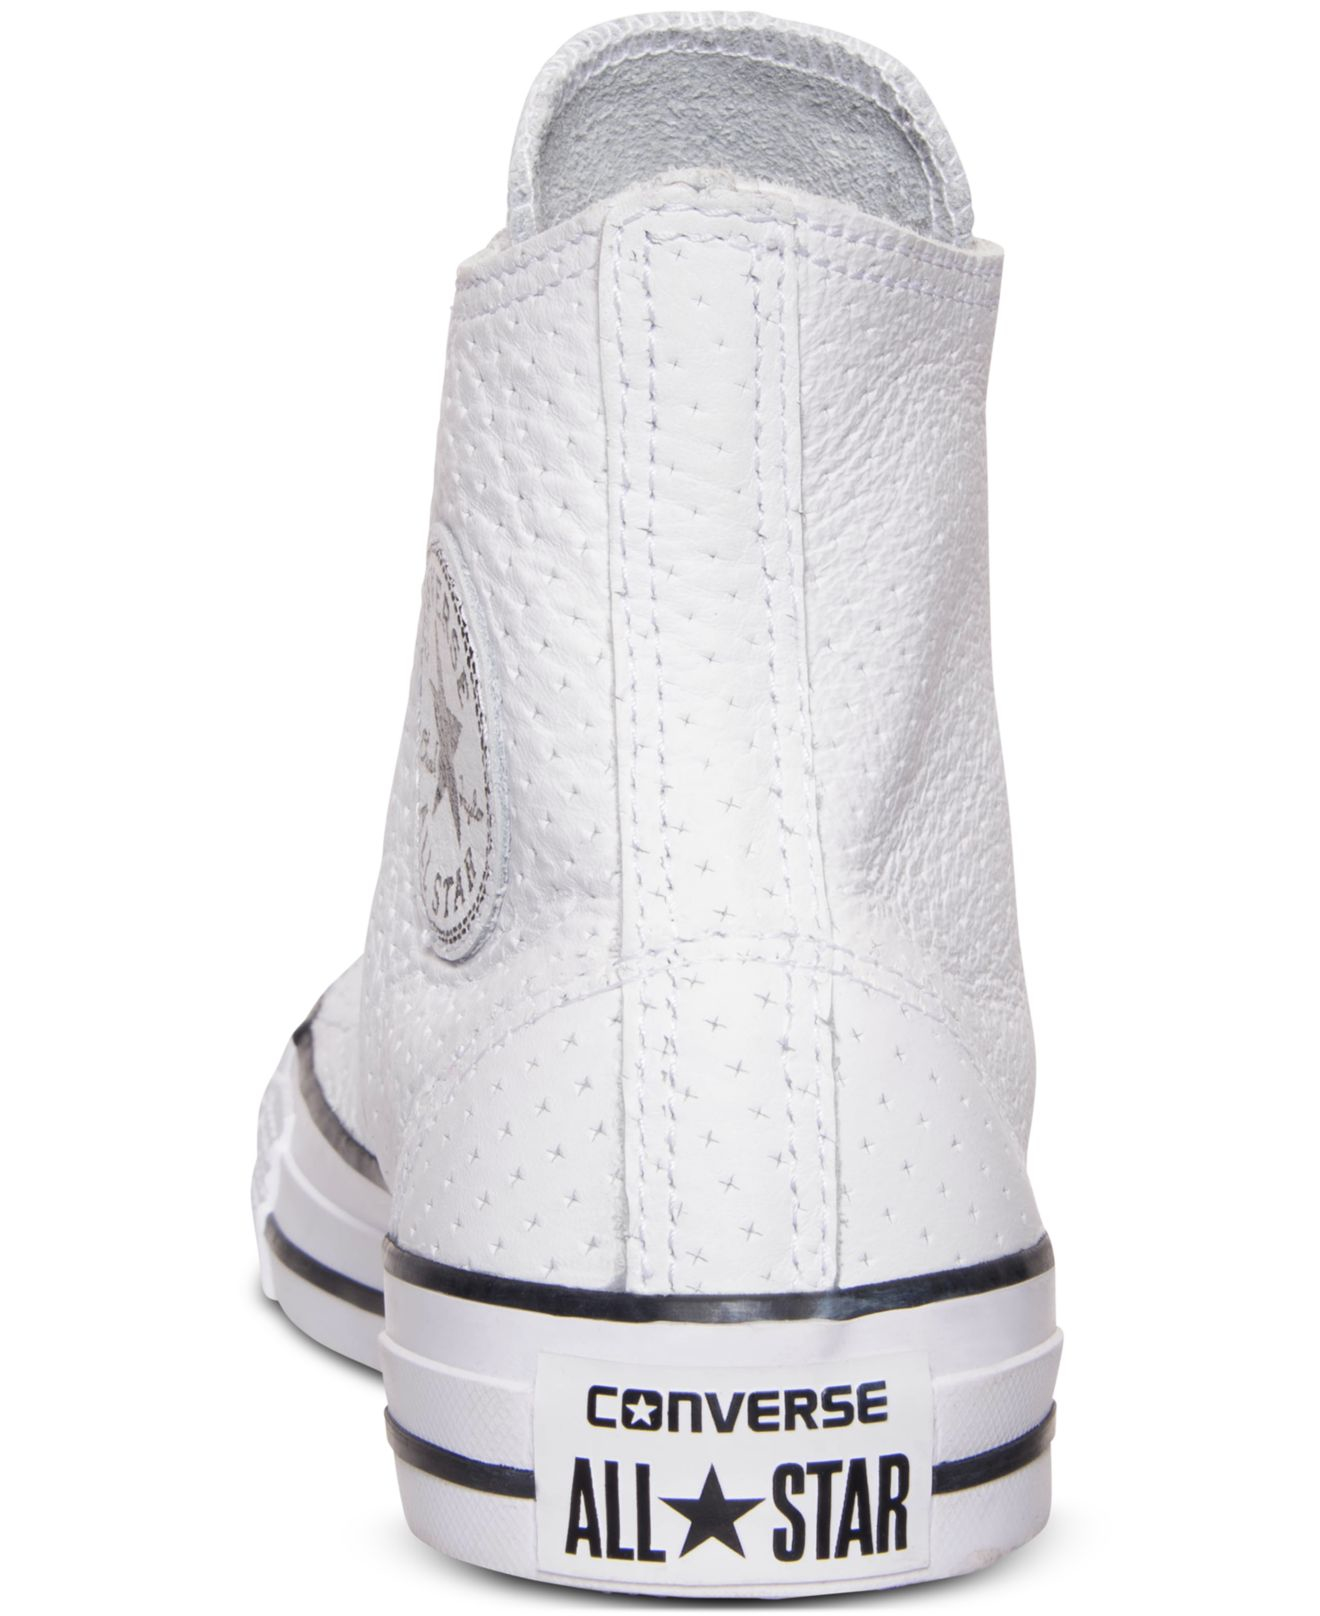 92d035a77ab1 Lyst - Converse Unisex Chuck Taylor Hi Craft Leather Casual Sneakers ...